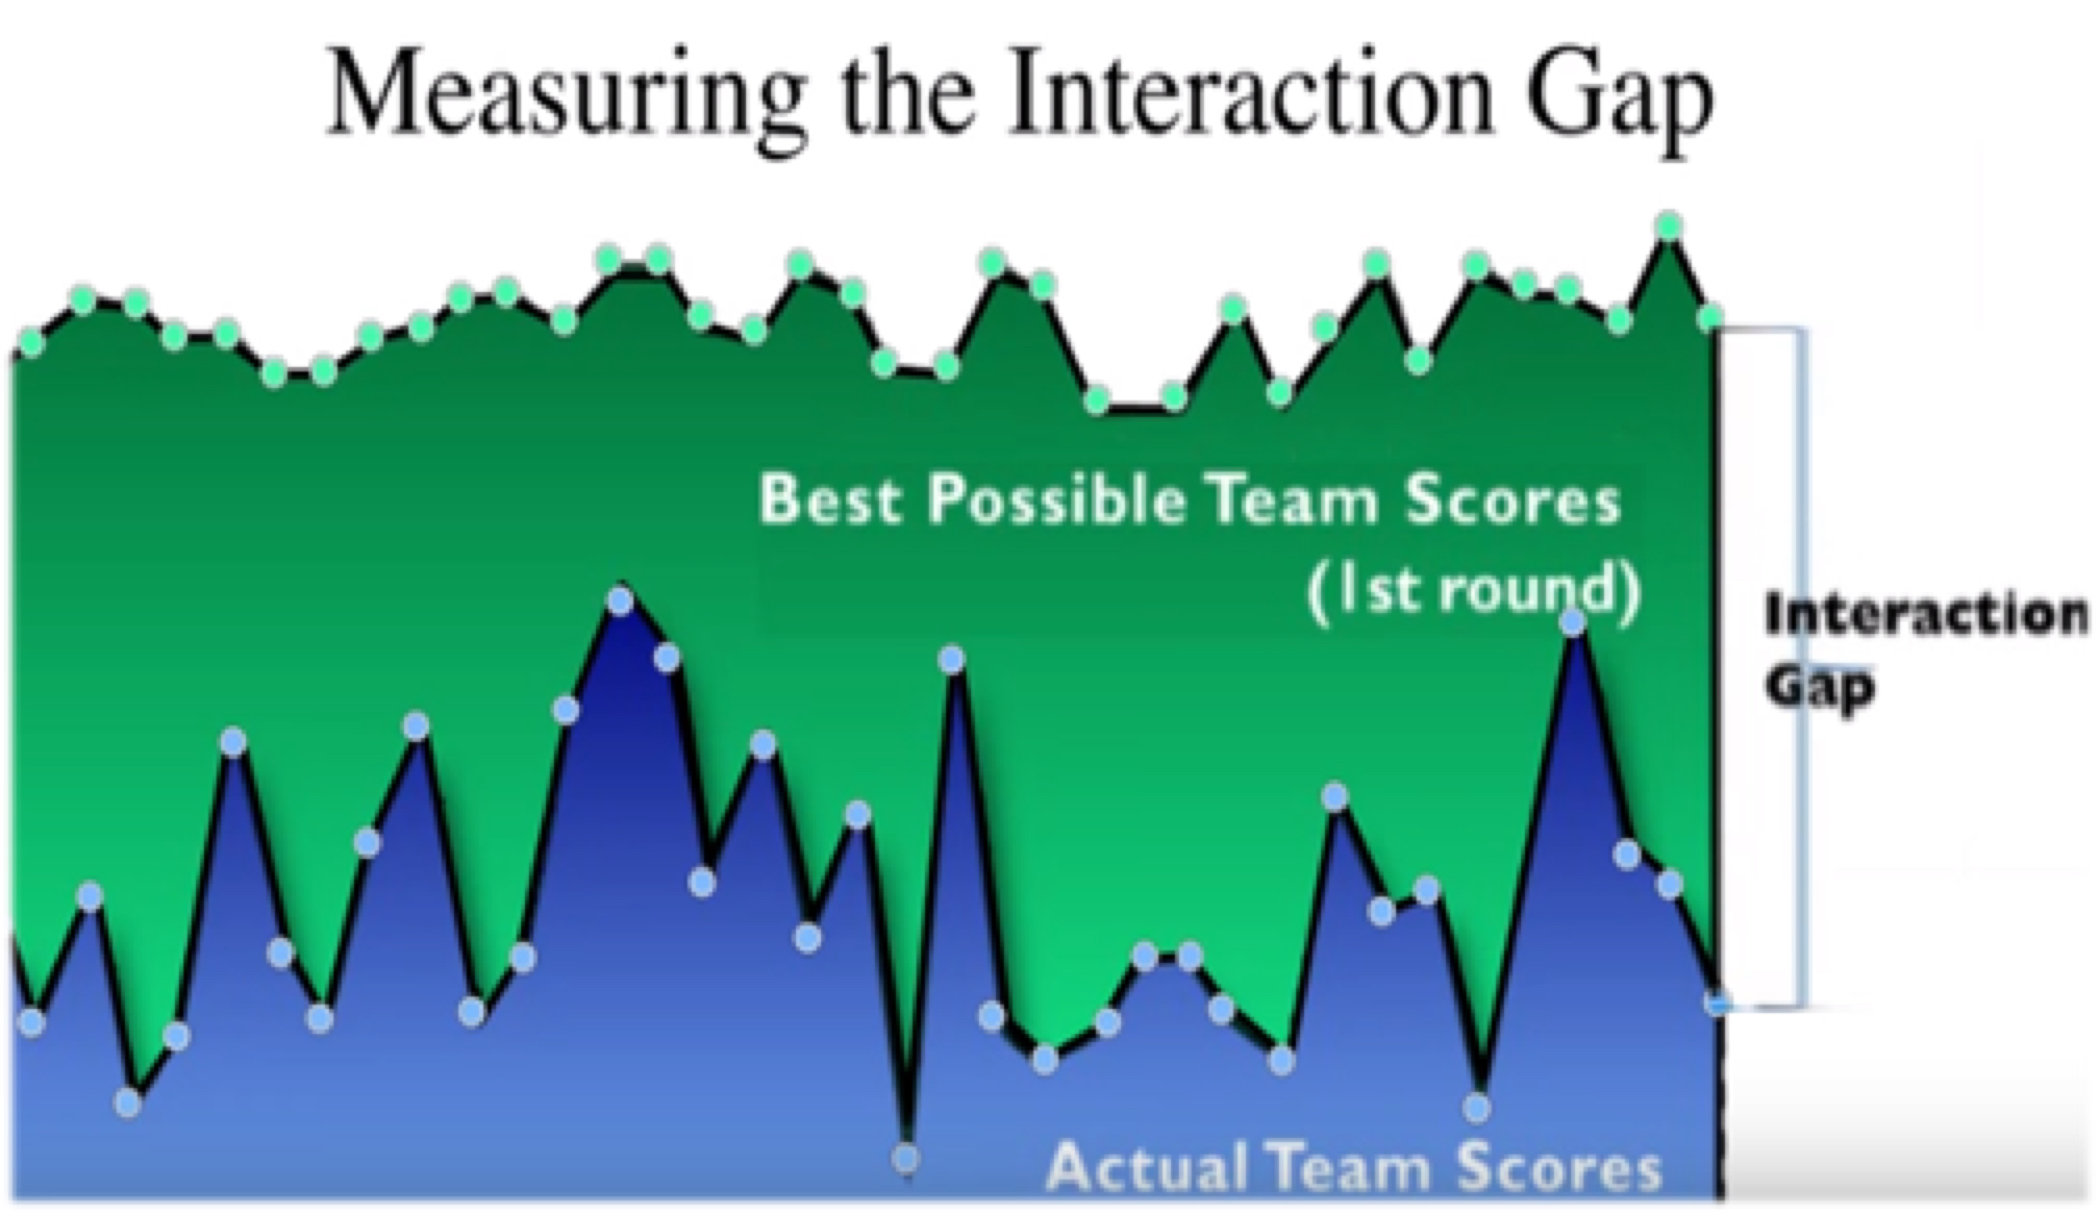 The Interaction Gap